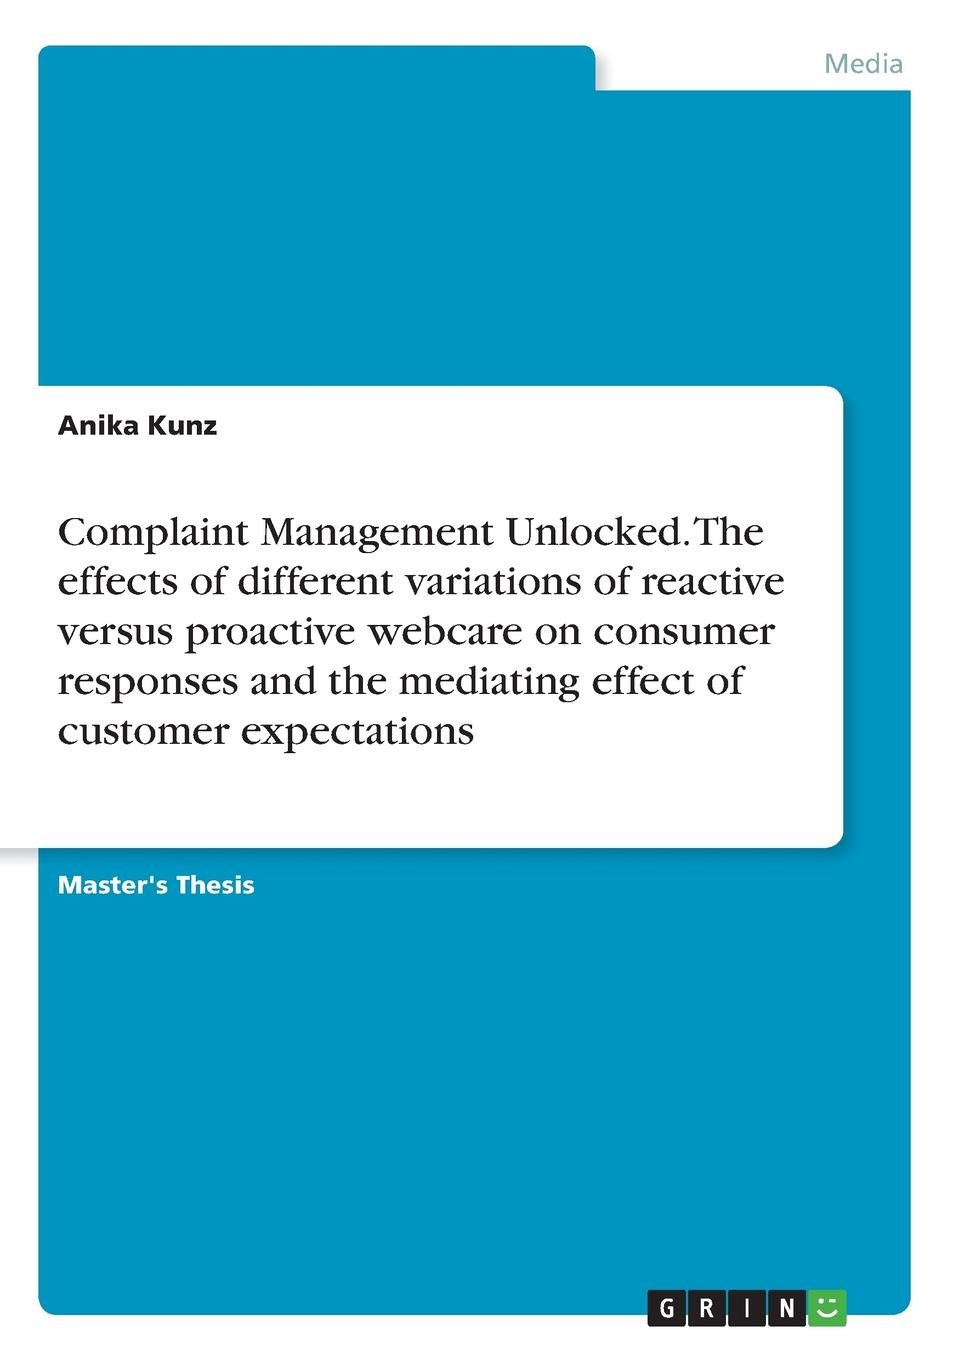 Anika Kunz Complaint Management Unlocked. The effects of different variations of reactive versus proactive webcare on consumer responses and the mediating effect of customer expectations study on behaviour of frp confined circular column